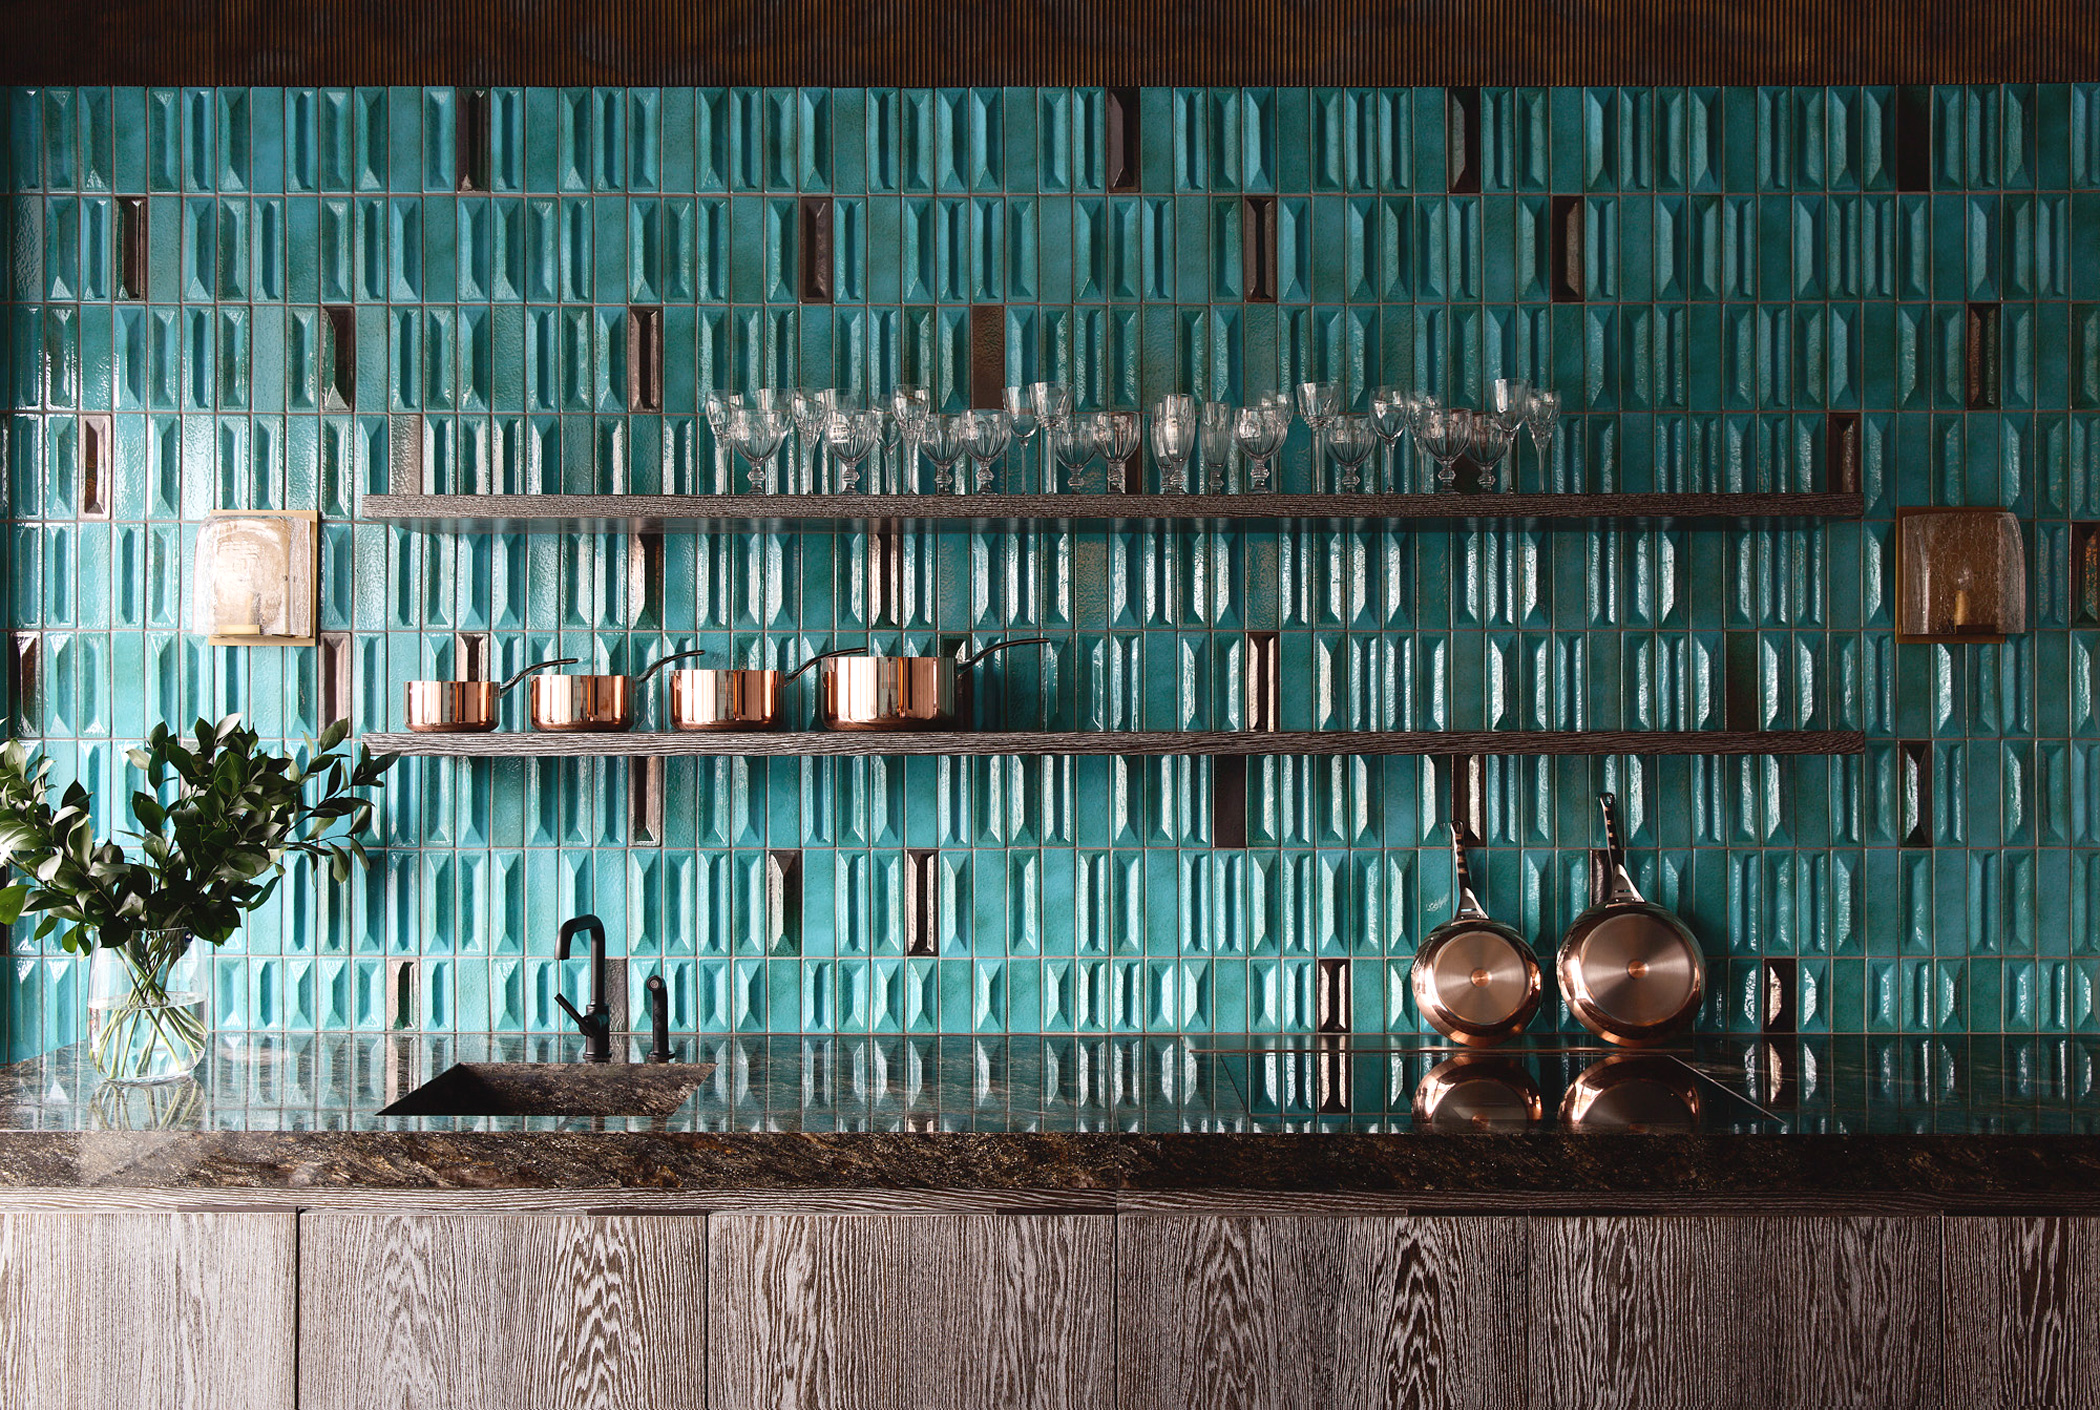 Doria- Gio Ponti - Flamed Effect - Doria tiles were originally designed by Giò Ponti in 1971 for Palazzo Montedoria, in Milan. These Green ceramic tiles are characterized by a smooth diamond-cut surface, sized cm 6×19 cm. 